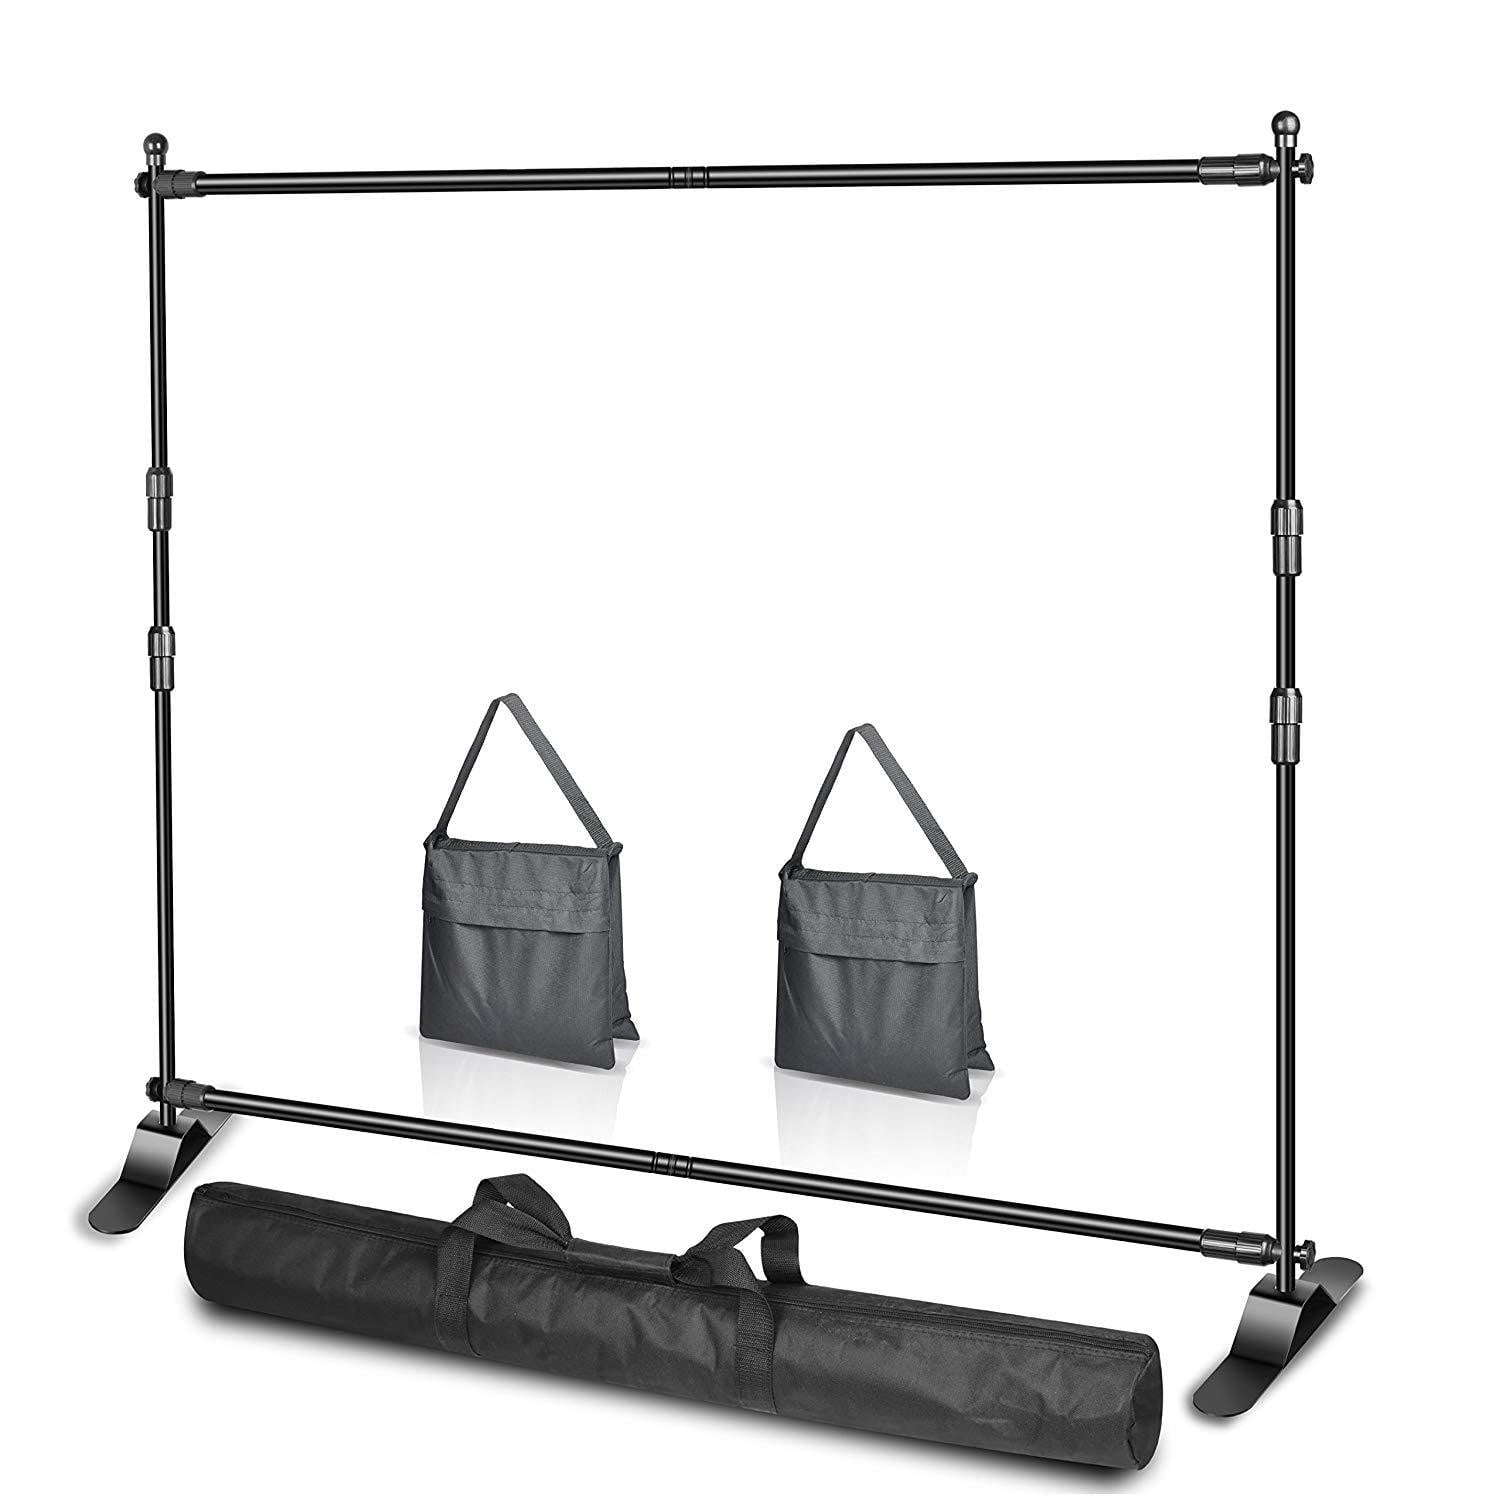 Emart 10 x 8ft (W X H) Photo Backdrop Banner Stand - EMART8